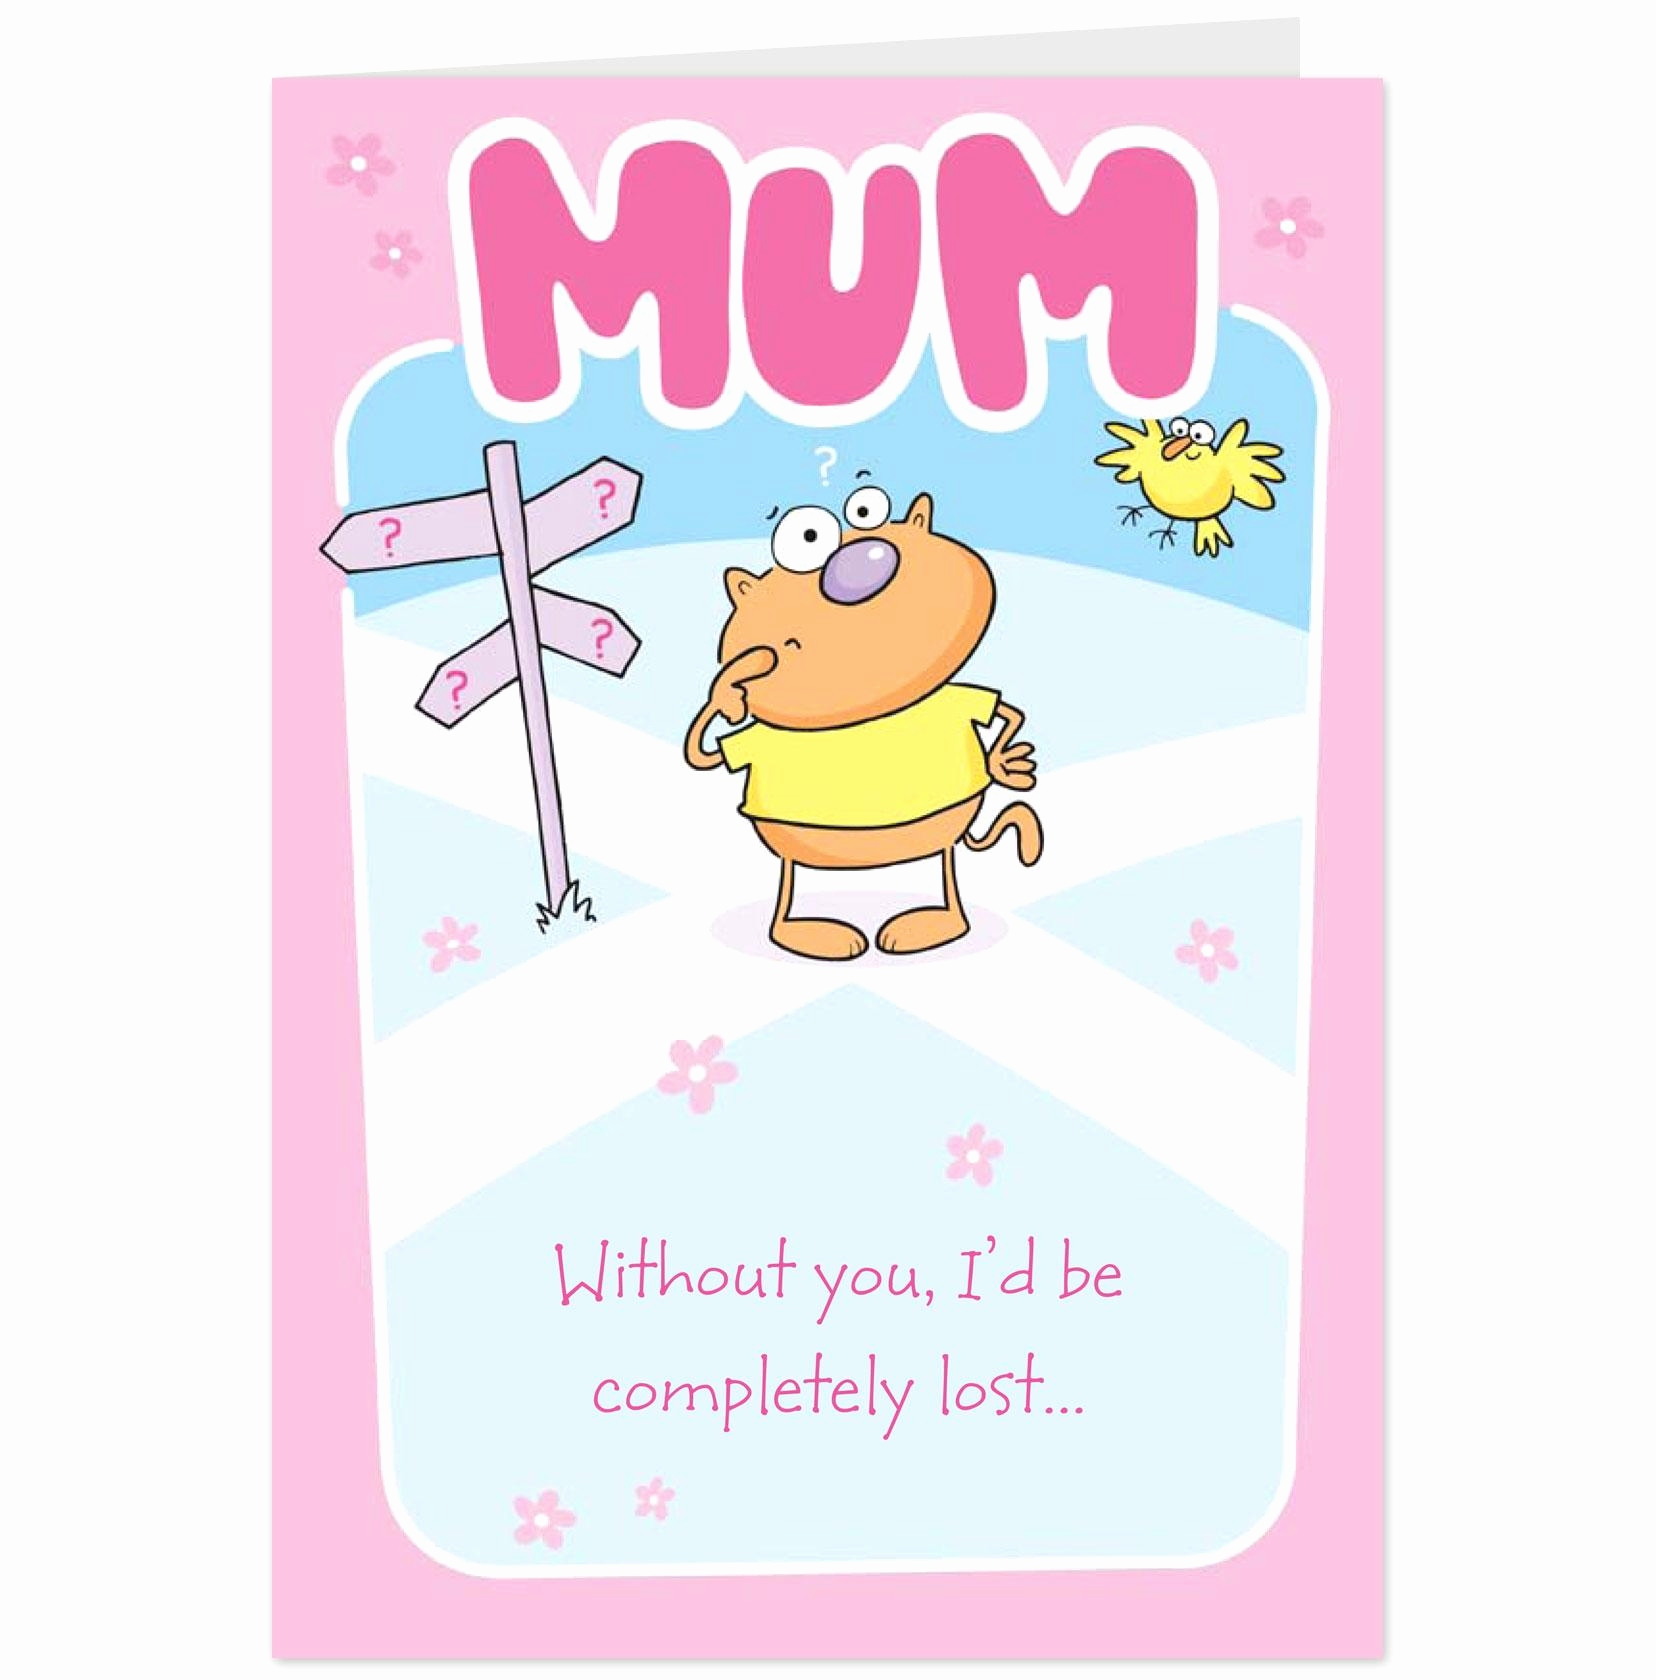 birthday card ideas for mom from son ; happy-birthday-son-cards-free-awesome-family-funny-birthday-cards-for-mom-from-son-plus-happy-birthday-of-happy-birthday-son-cards-free